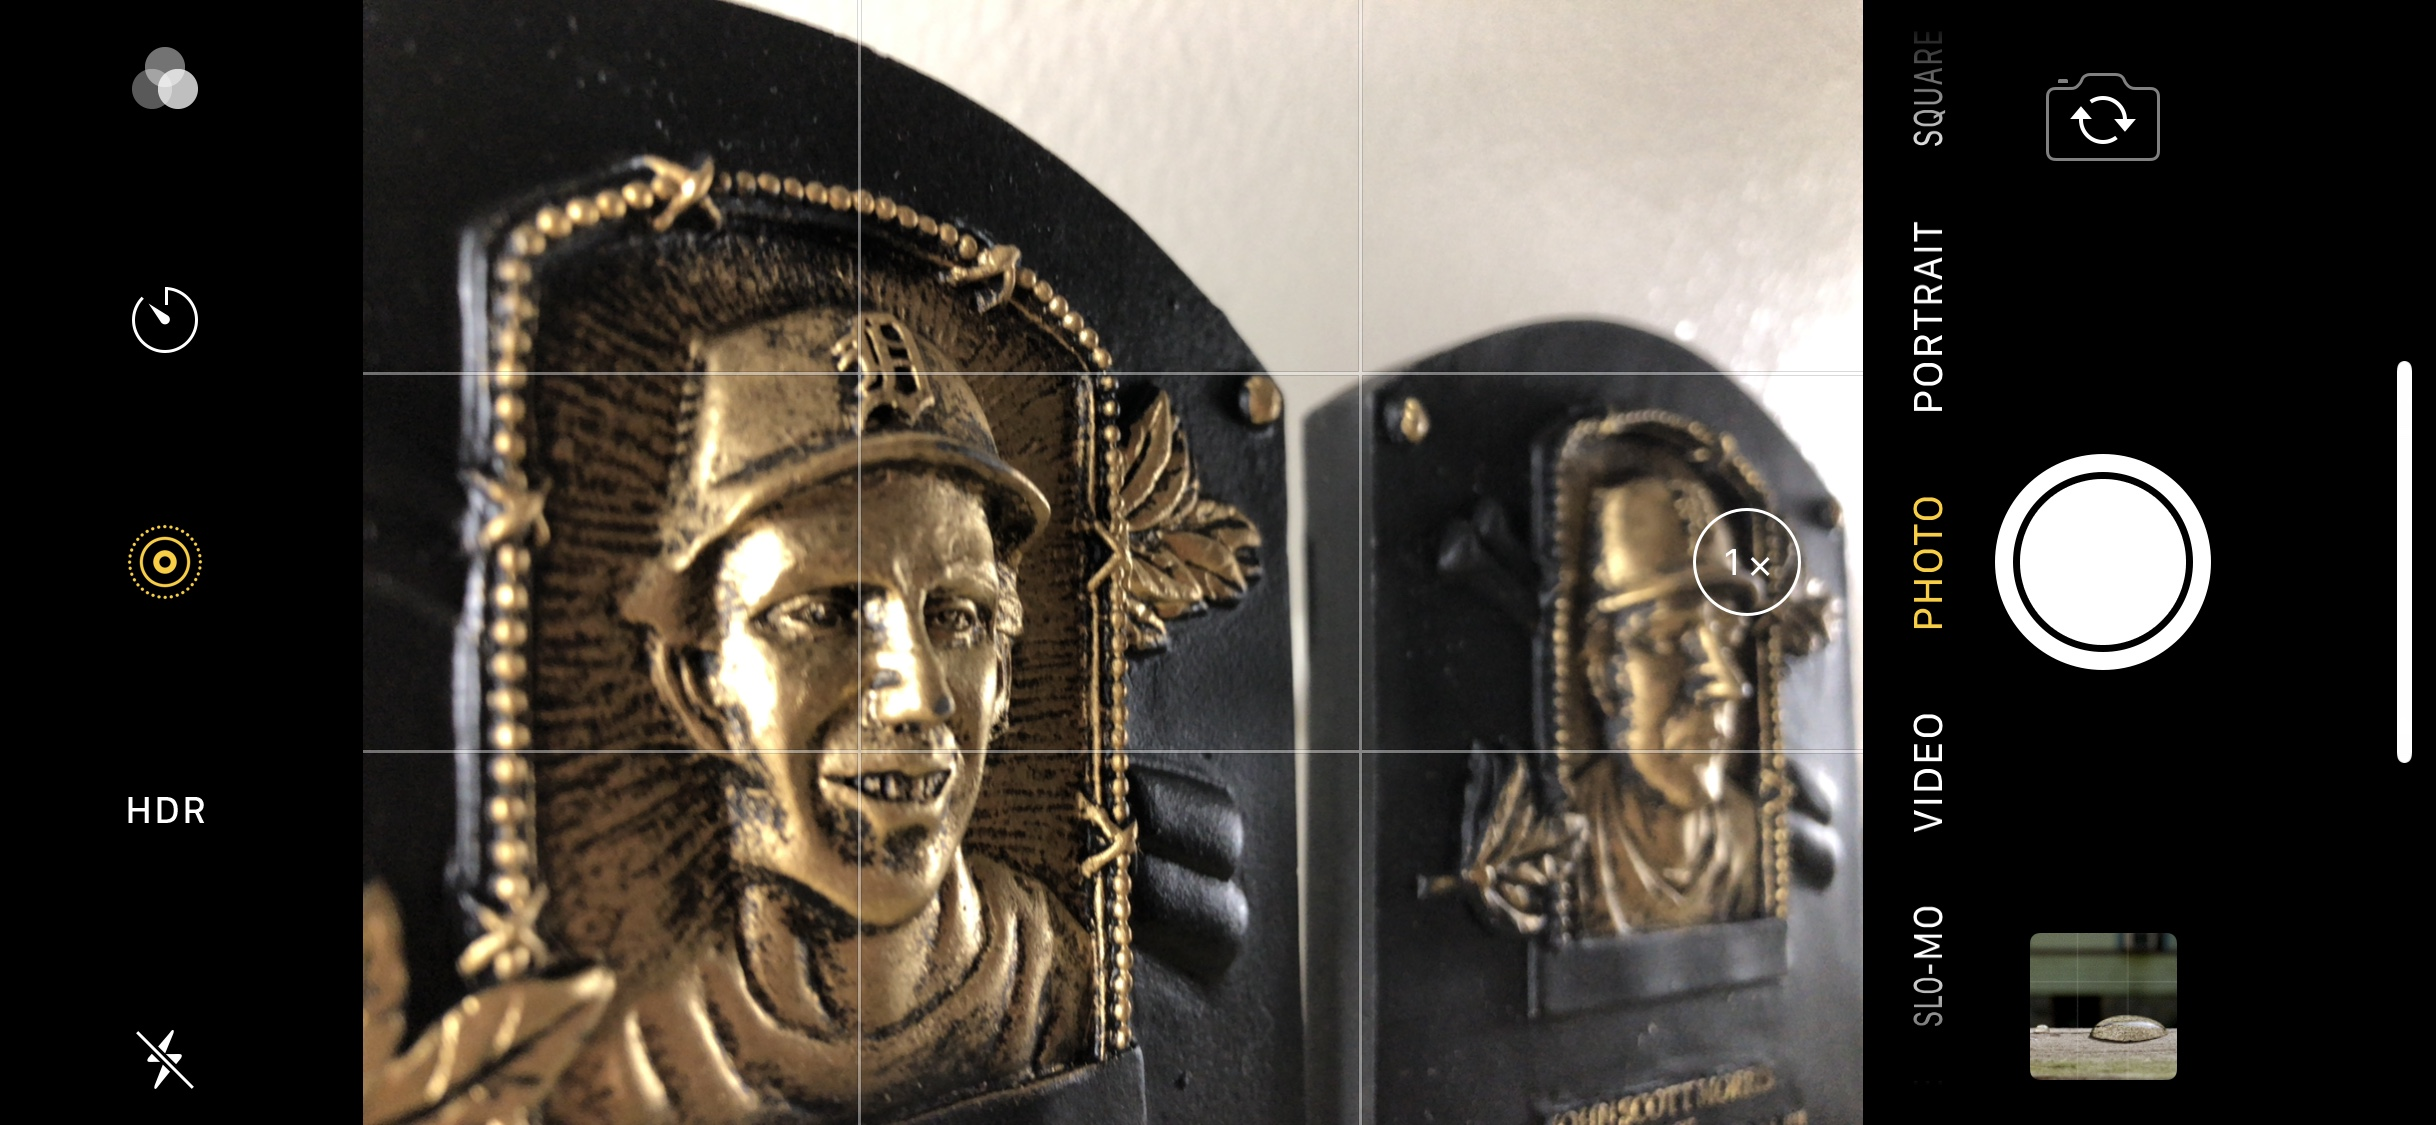 Learn how to change the settings on both the left and right of the your camera. Helps when taking photos and videos of something like actual baseball players, not their statues.